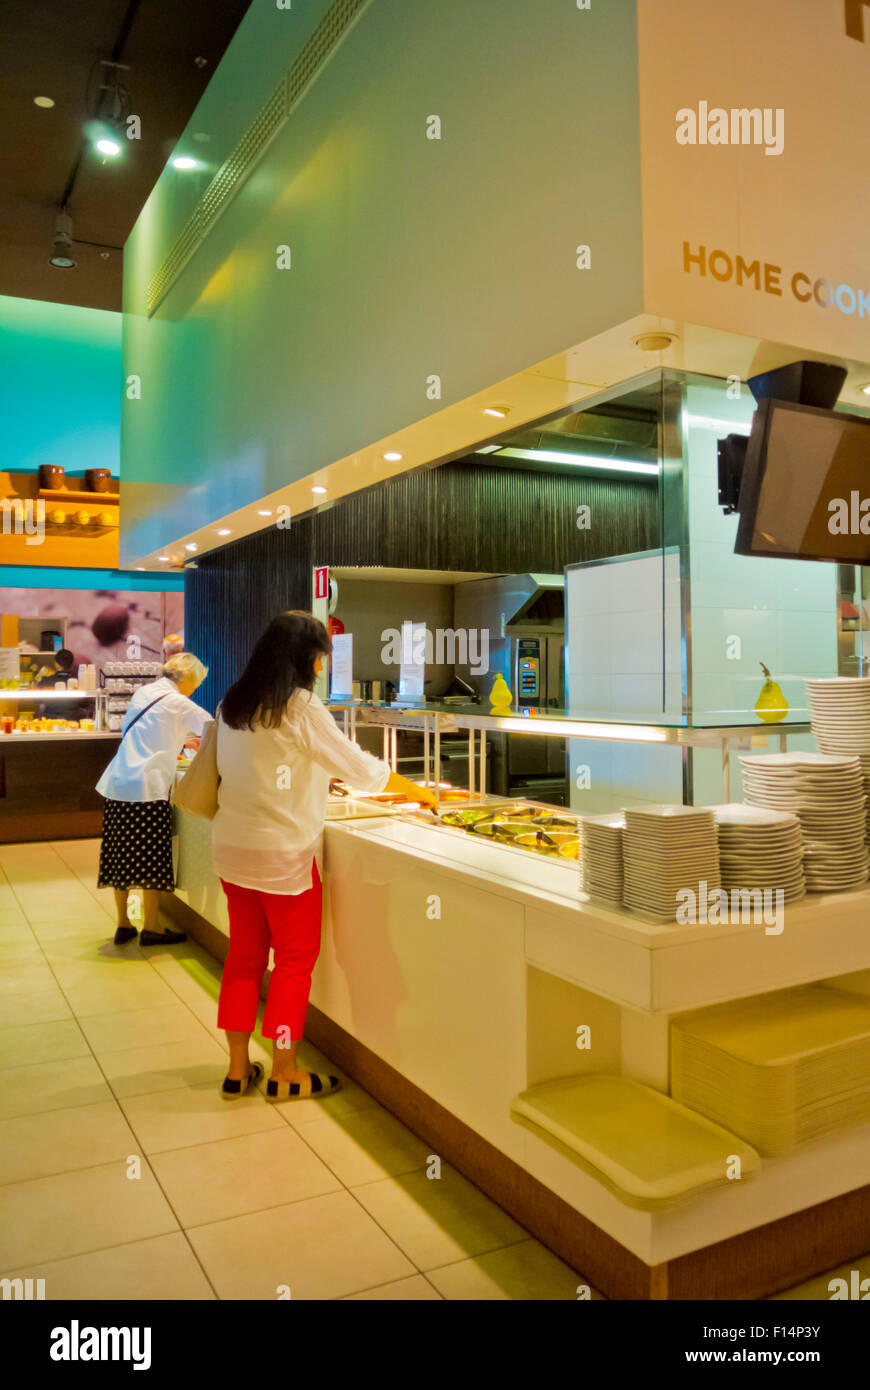 8th floor food court, Stockmann, department store, Helsinki, Finland, Europe - Stock Image